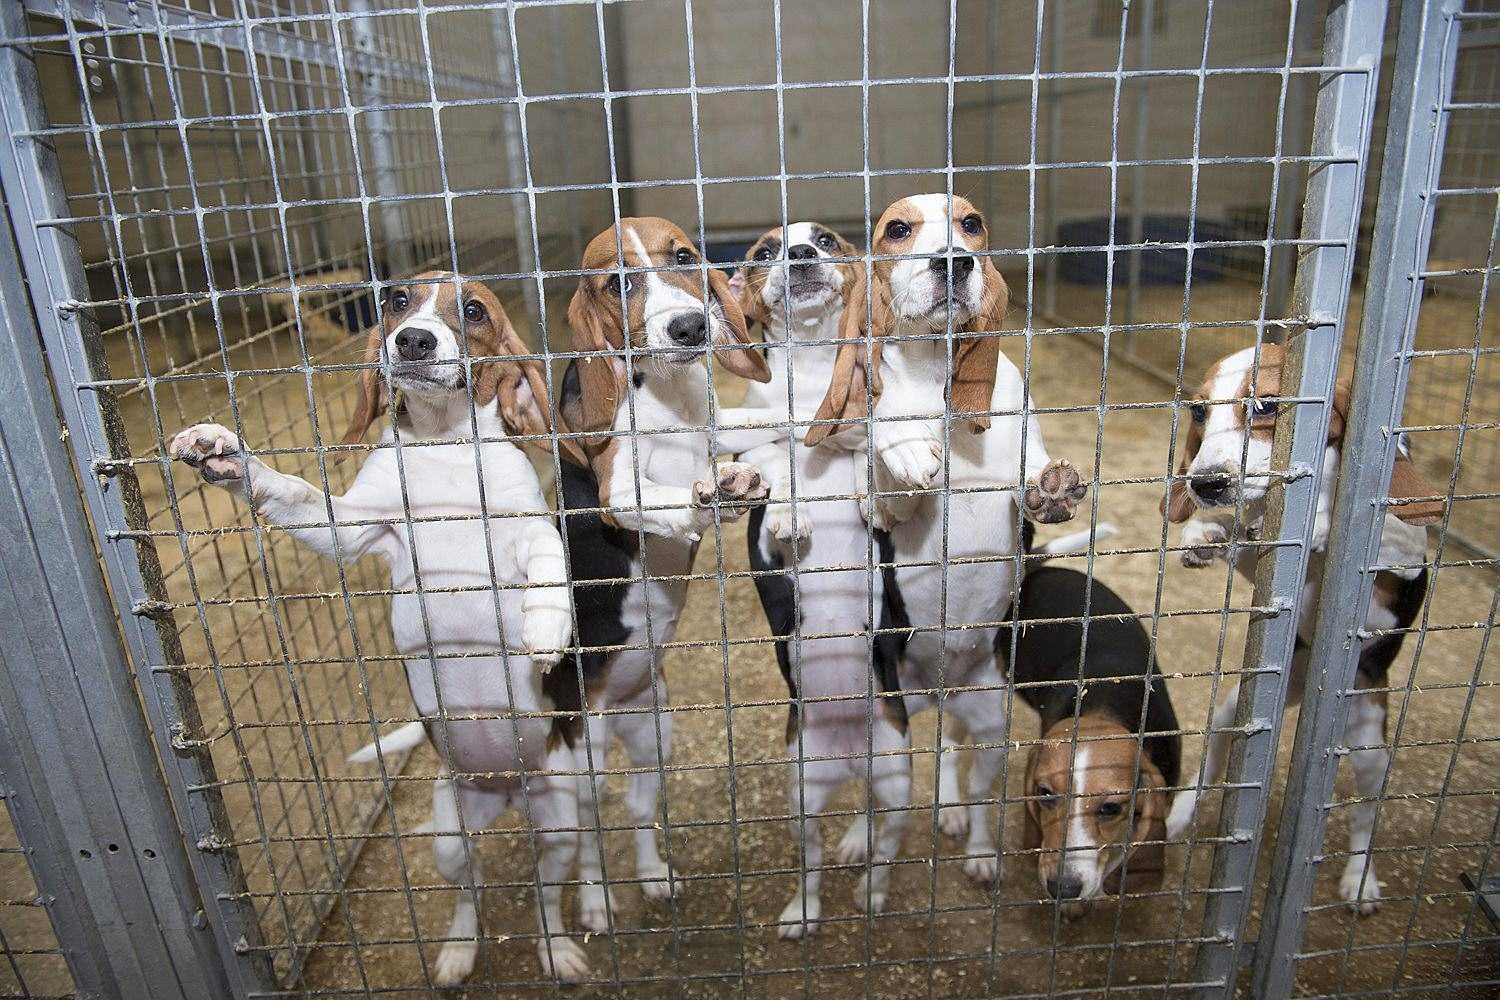 UNILAD 03 37e78fe4 5b2a 1 2486858a5 There's A Secretive Farm In Cambridge Where Beagles Are Bred To Die